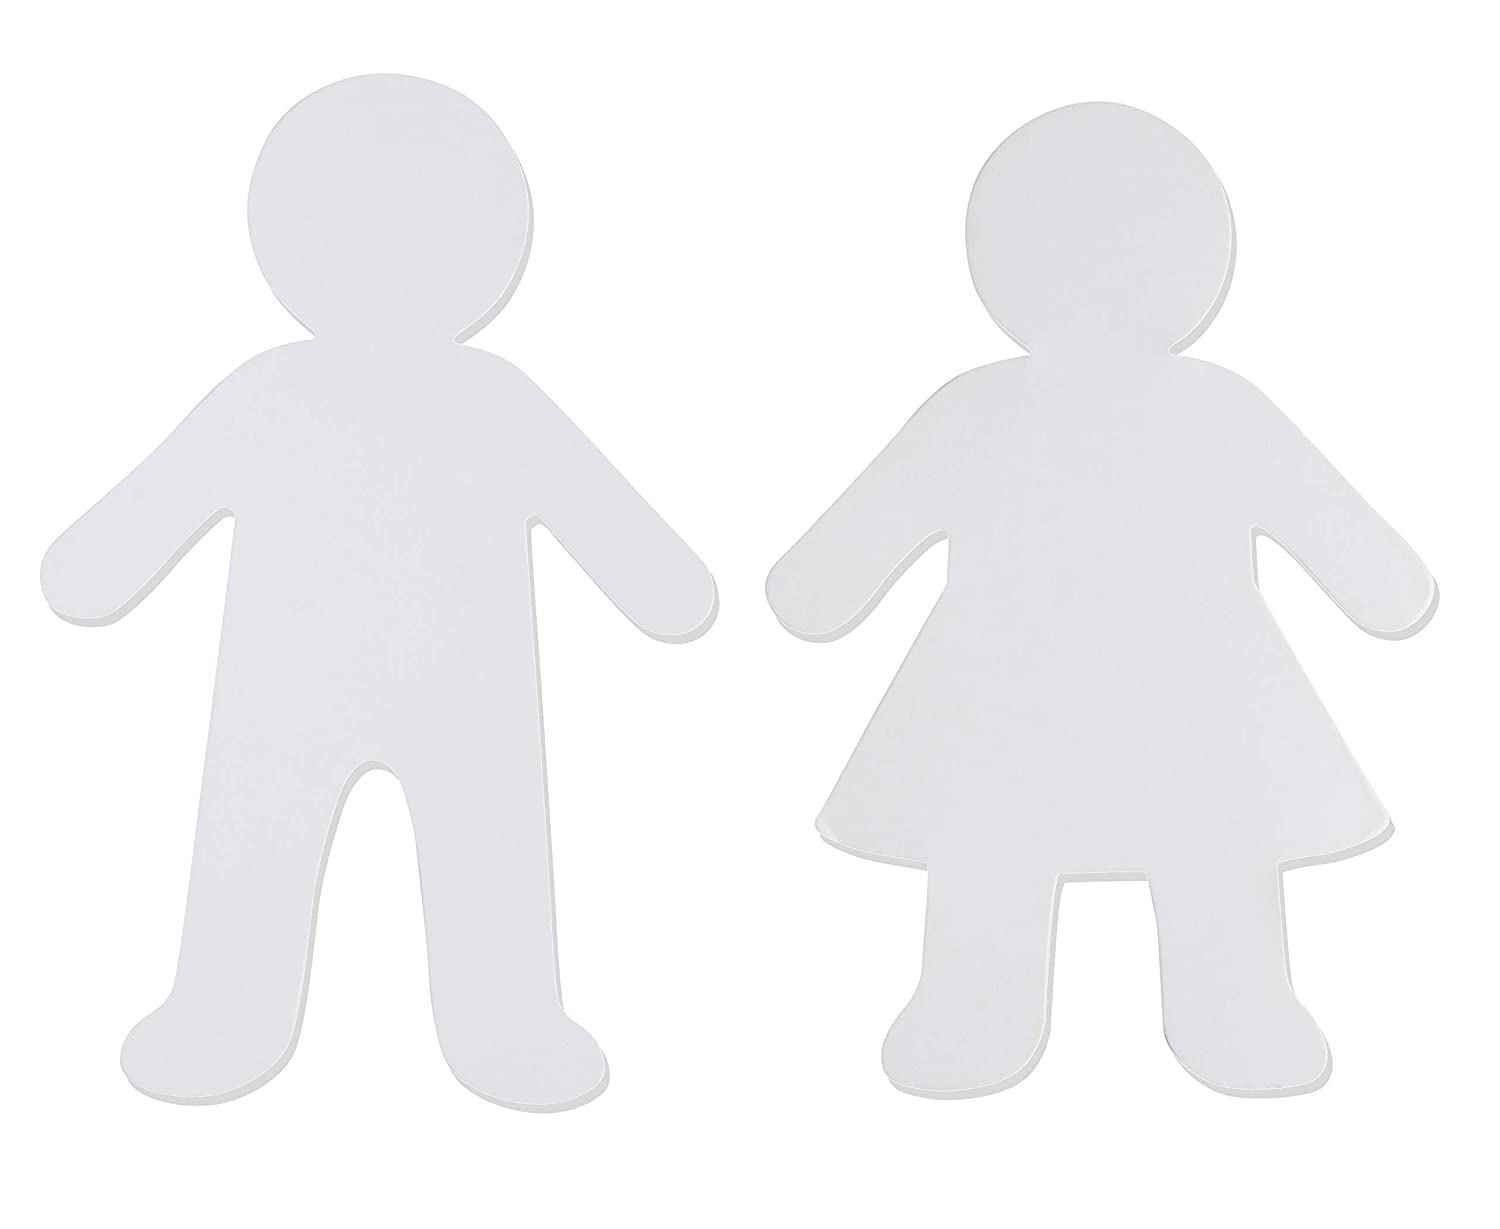 Boy and Girl Design White Kids Shaped Cutouts Paper Shapes Perfect for Art Class Projects Art and Craft Party Banner DIY Kid Shaped Papers 5.88 x 8.8 Inches Juvale 48-Pack Blank Paper Cutouts